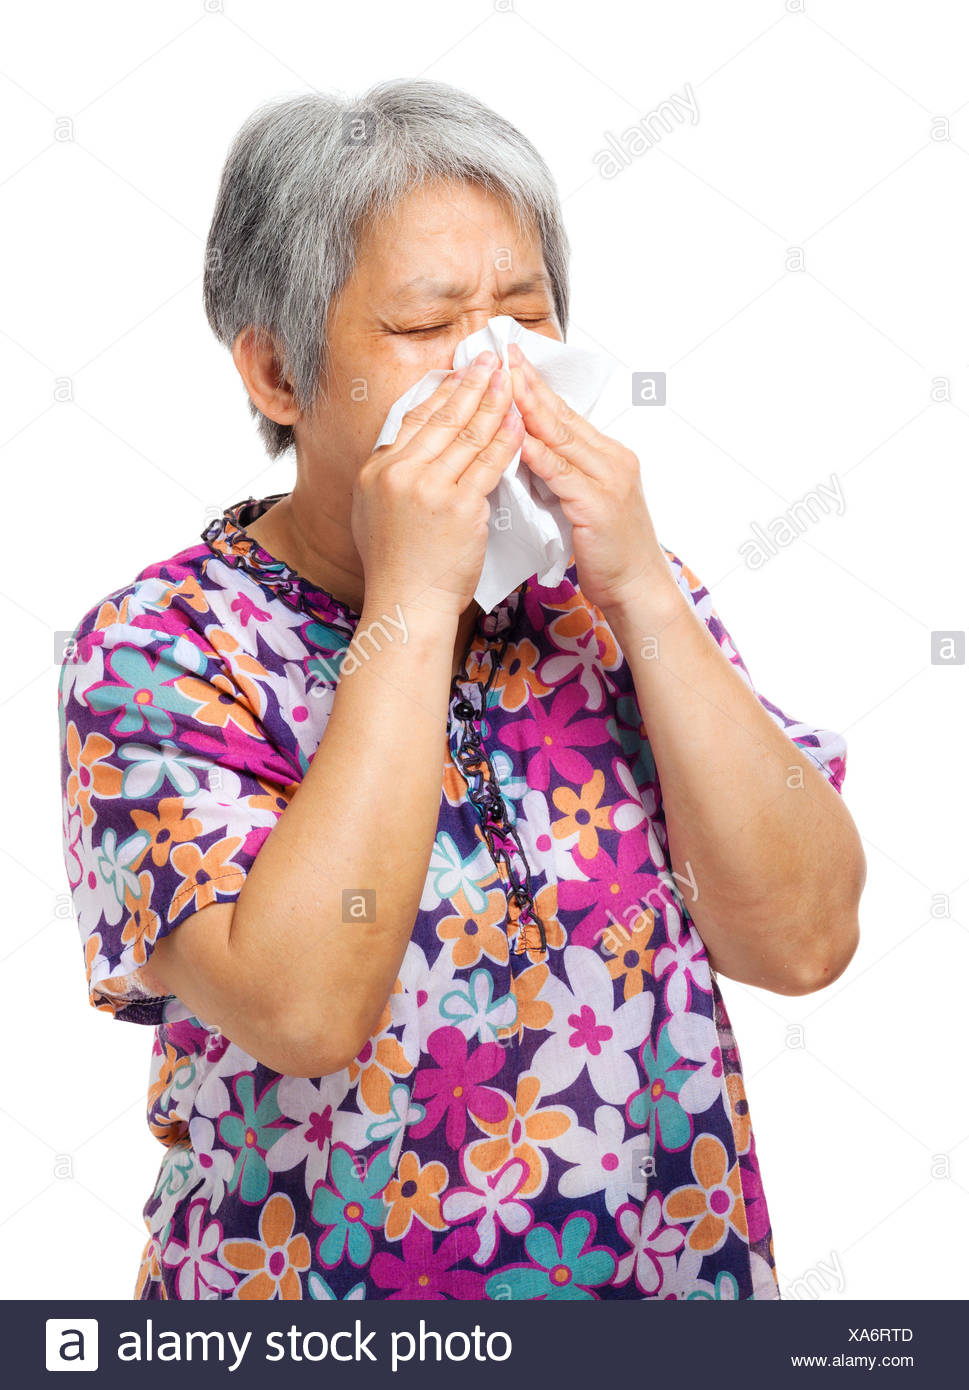 woman, hairy, cold, catarrh, nose, chinese, japanese, asian, tissue, sneeze,